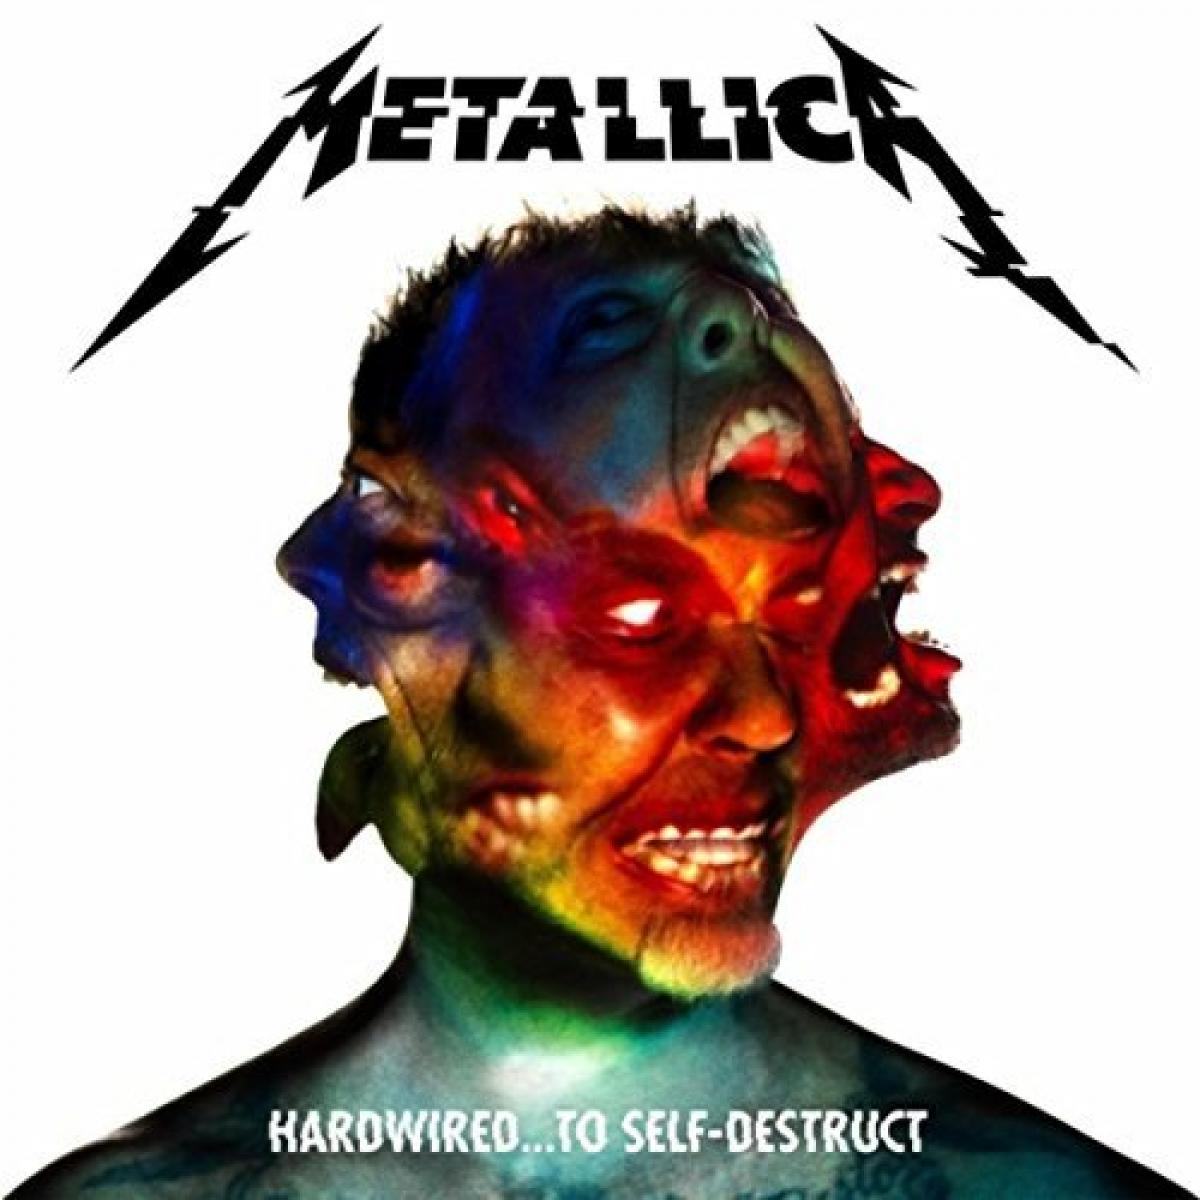 Hardwired... to Self-Destruct by Metallica